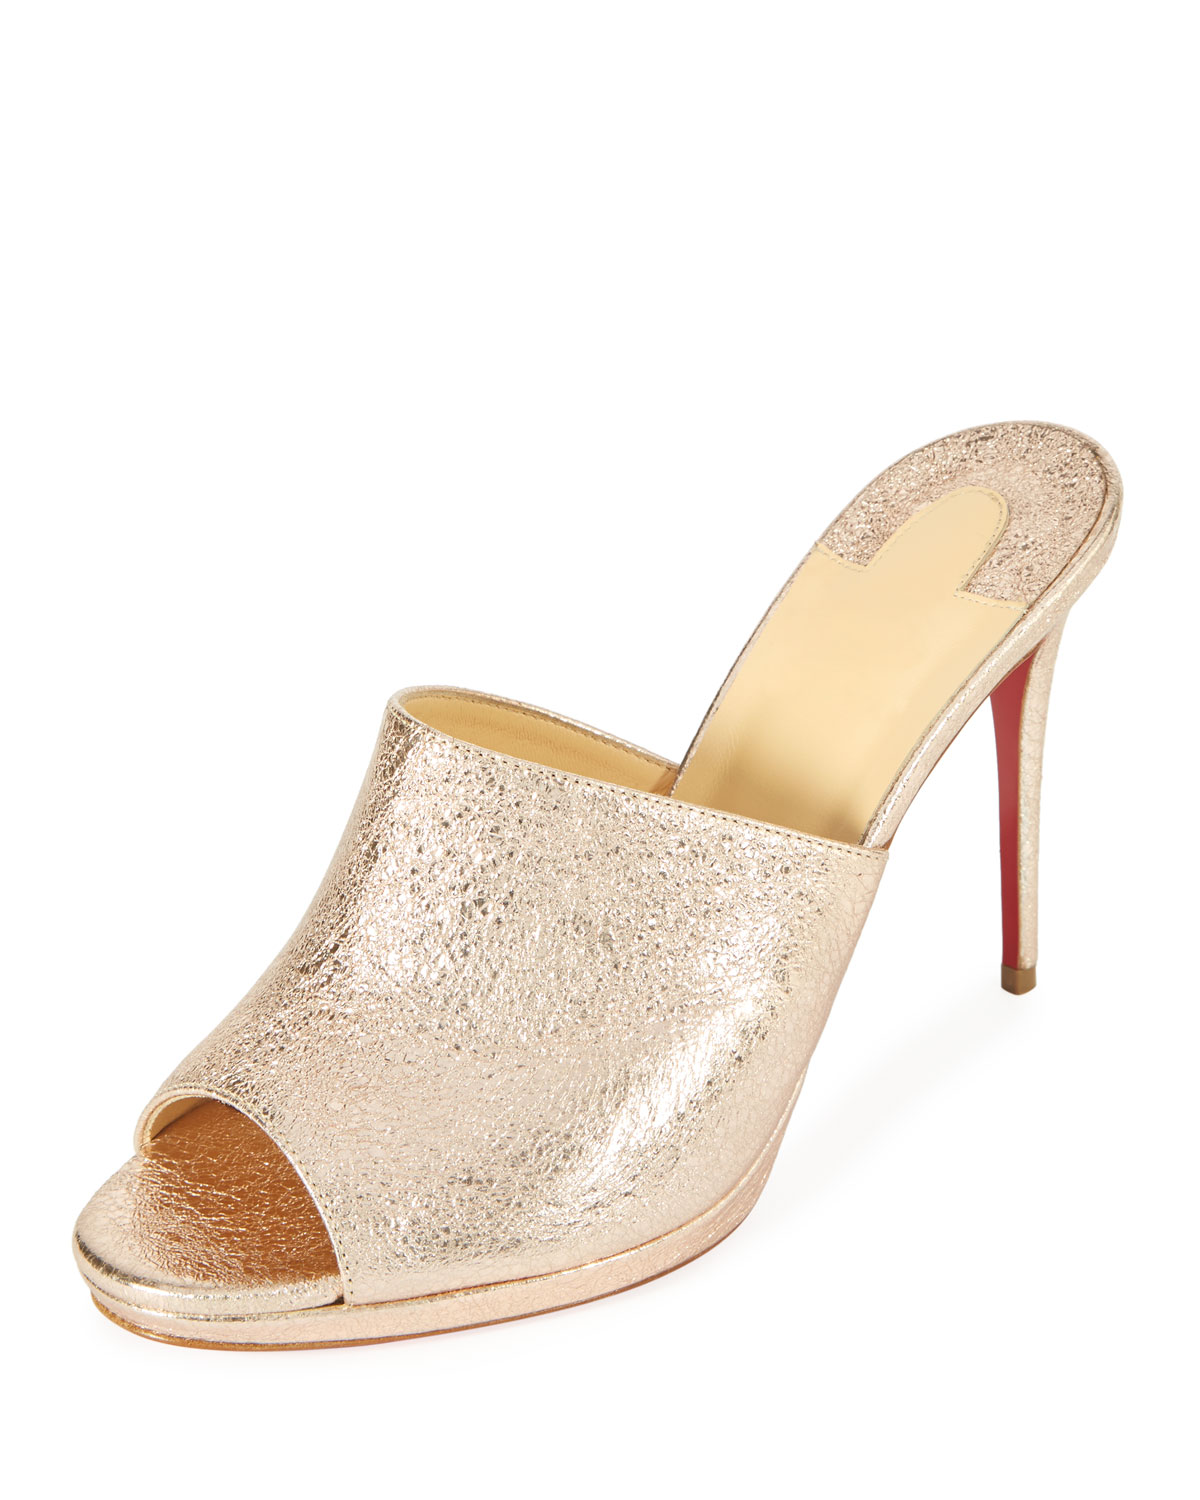 7c83a2ba956b Christian Louboutin Pigamule 100mm Metallic Leather Red Sole Slide Sandal